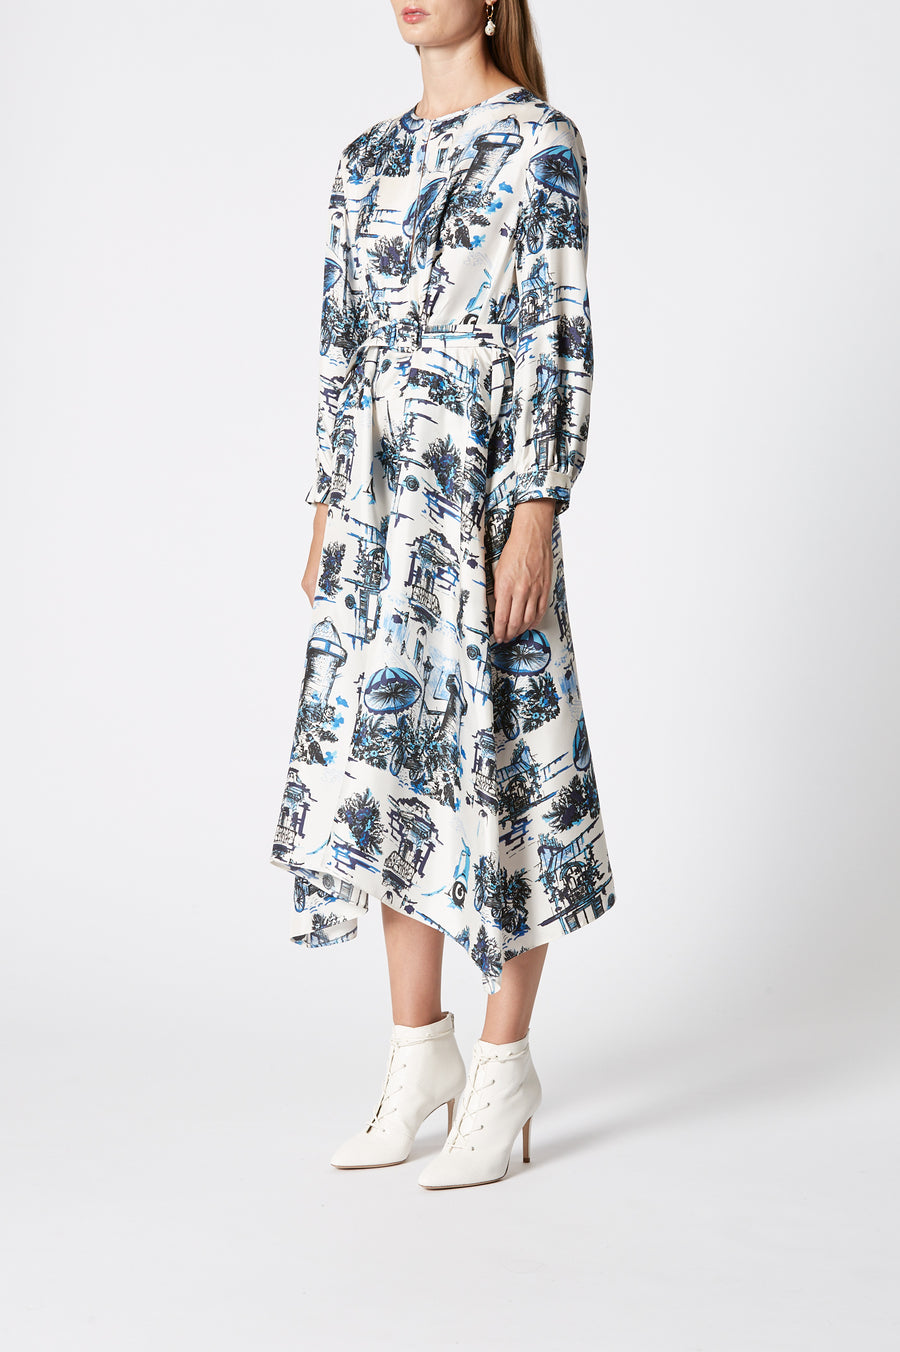 Silk Souvenir Print Dress, regular fit, v-neckline, concealed button fastening on the front, long sleeves, a belt allowing the dress to be cinched in at the waist and inseam pockets, Color Blue